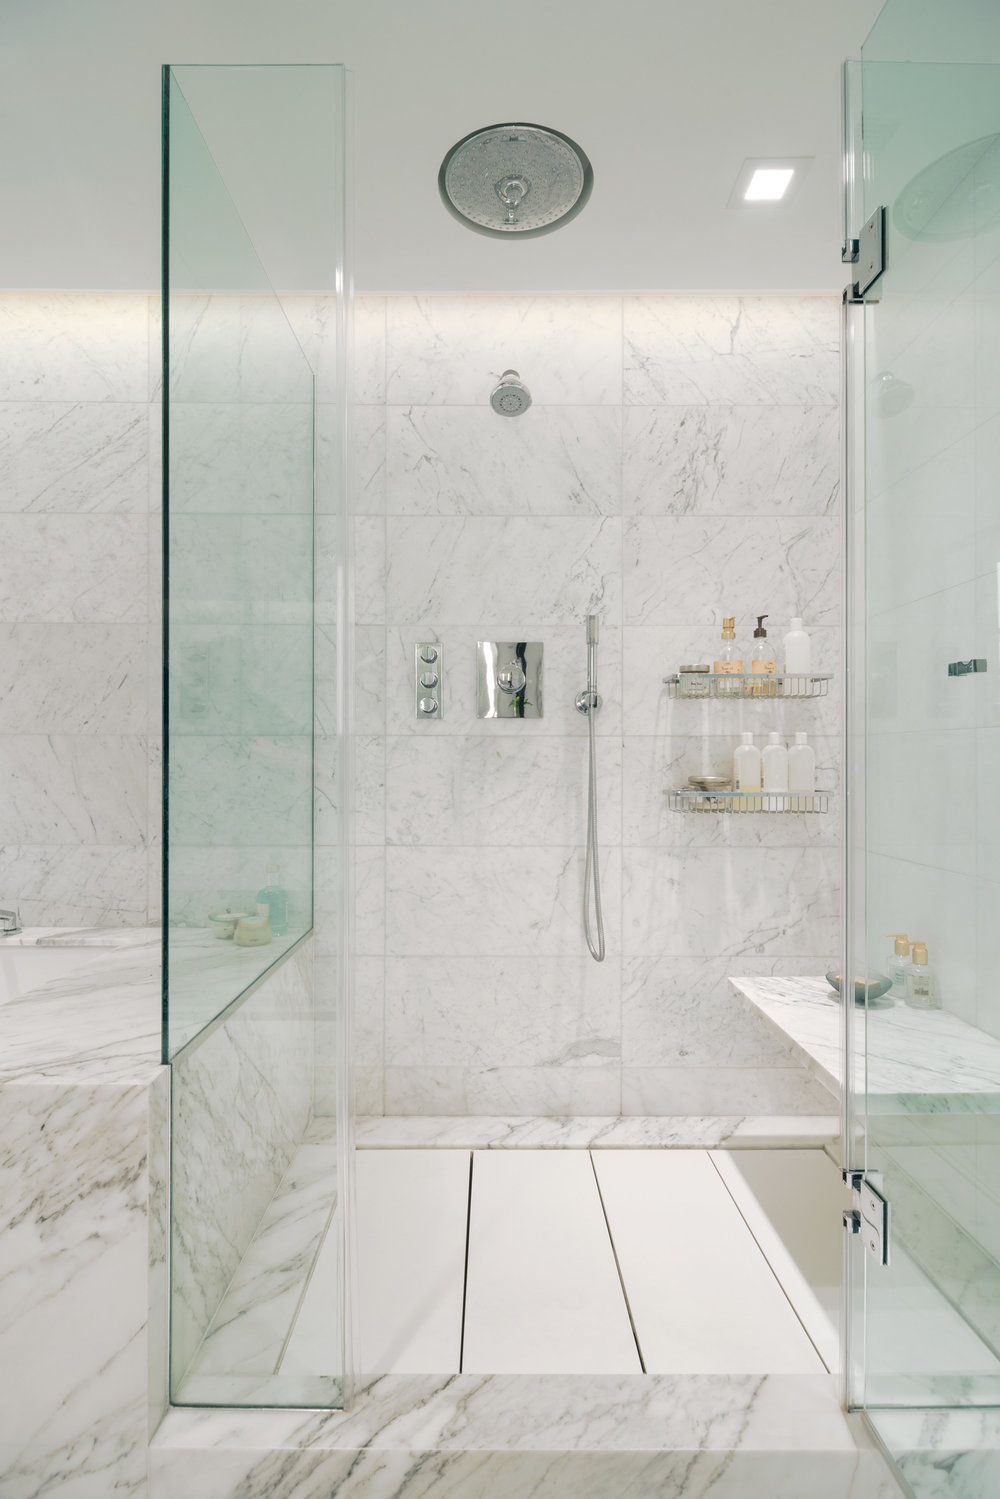 new-york-architect-adi-gershoni-master-bathroom-7.jpg